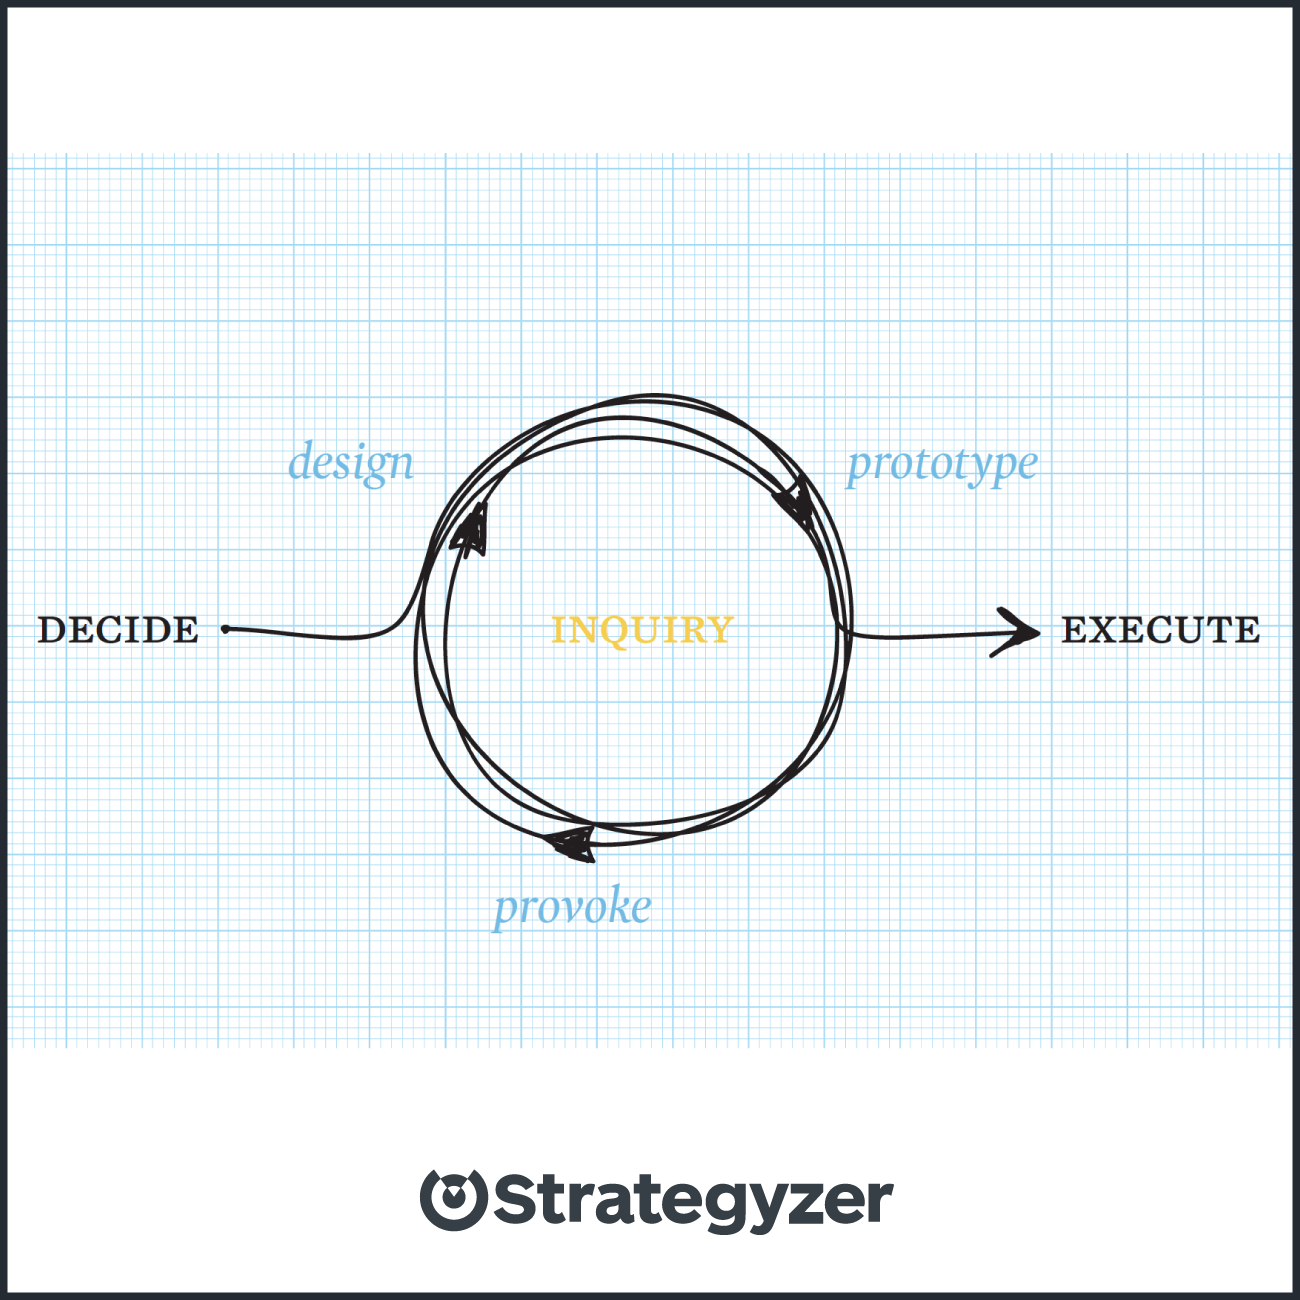 strategyzer-blog-book-visual-1.png